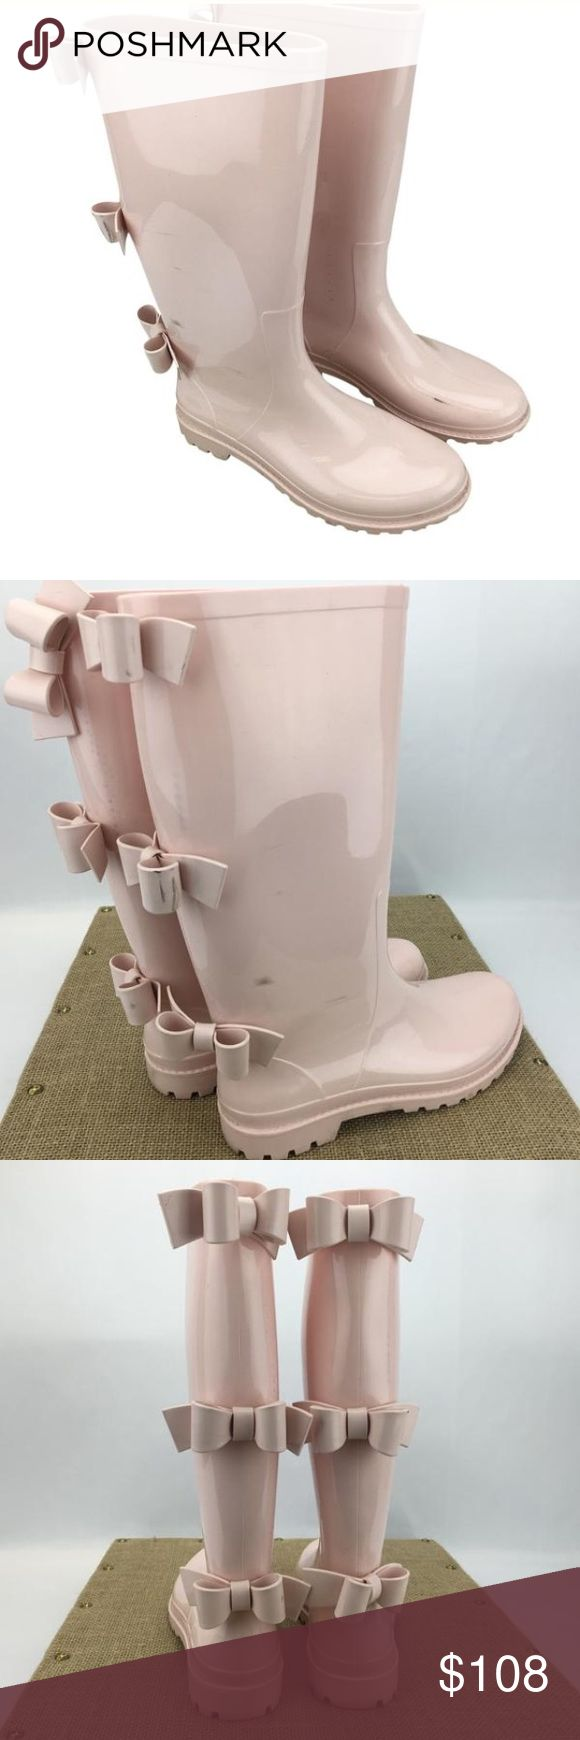 "RED Valentino Pink Round-Toe Rainboots RED Valentino Pink Round-Toe Rainboots With Three Bows in shiny PVC Rubber sole. Shaft height 13"". RED Valentino Shoes Winter & Rain Boots"